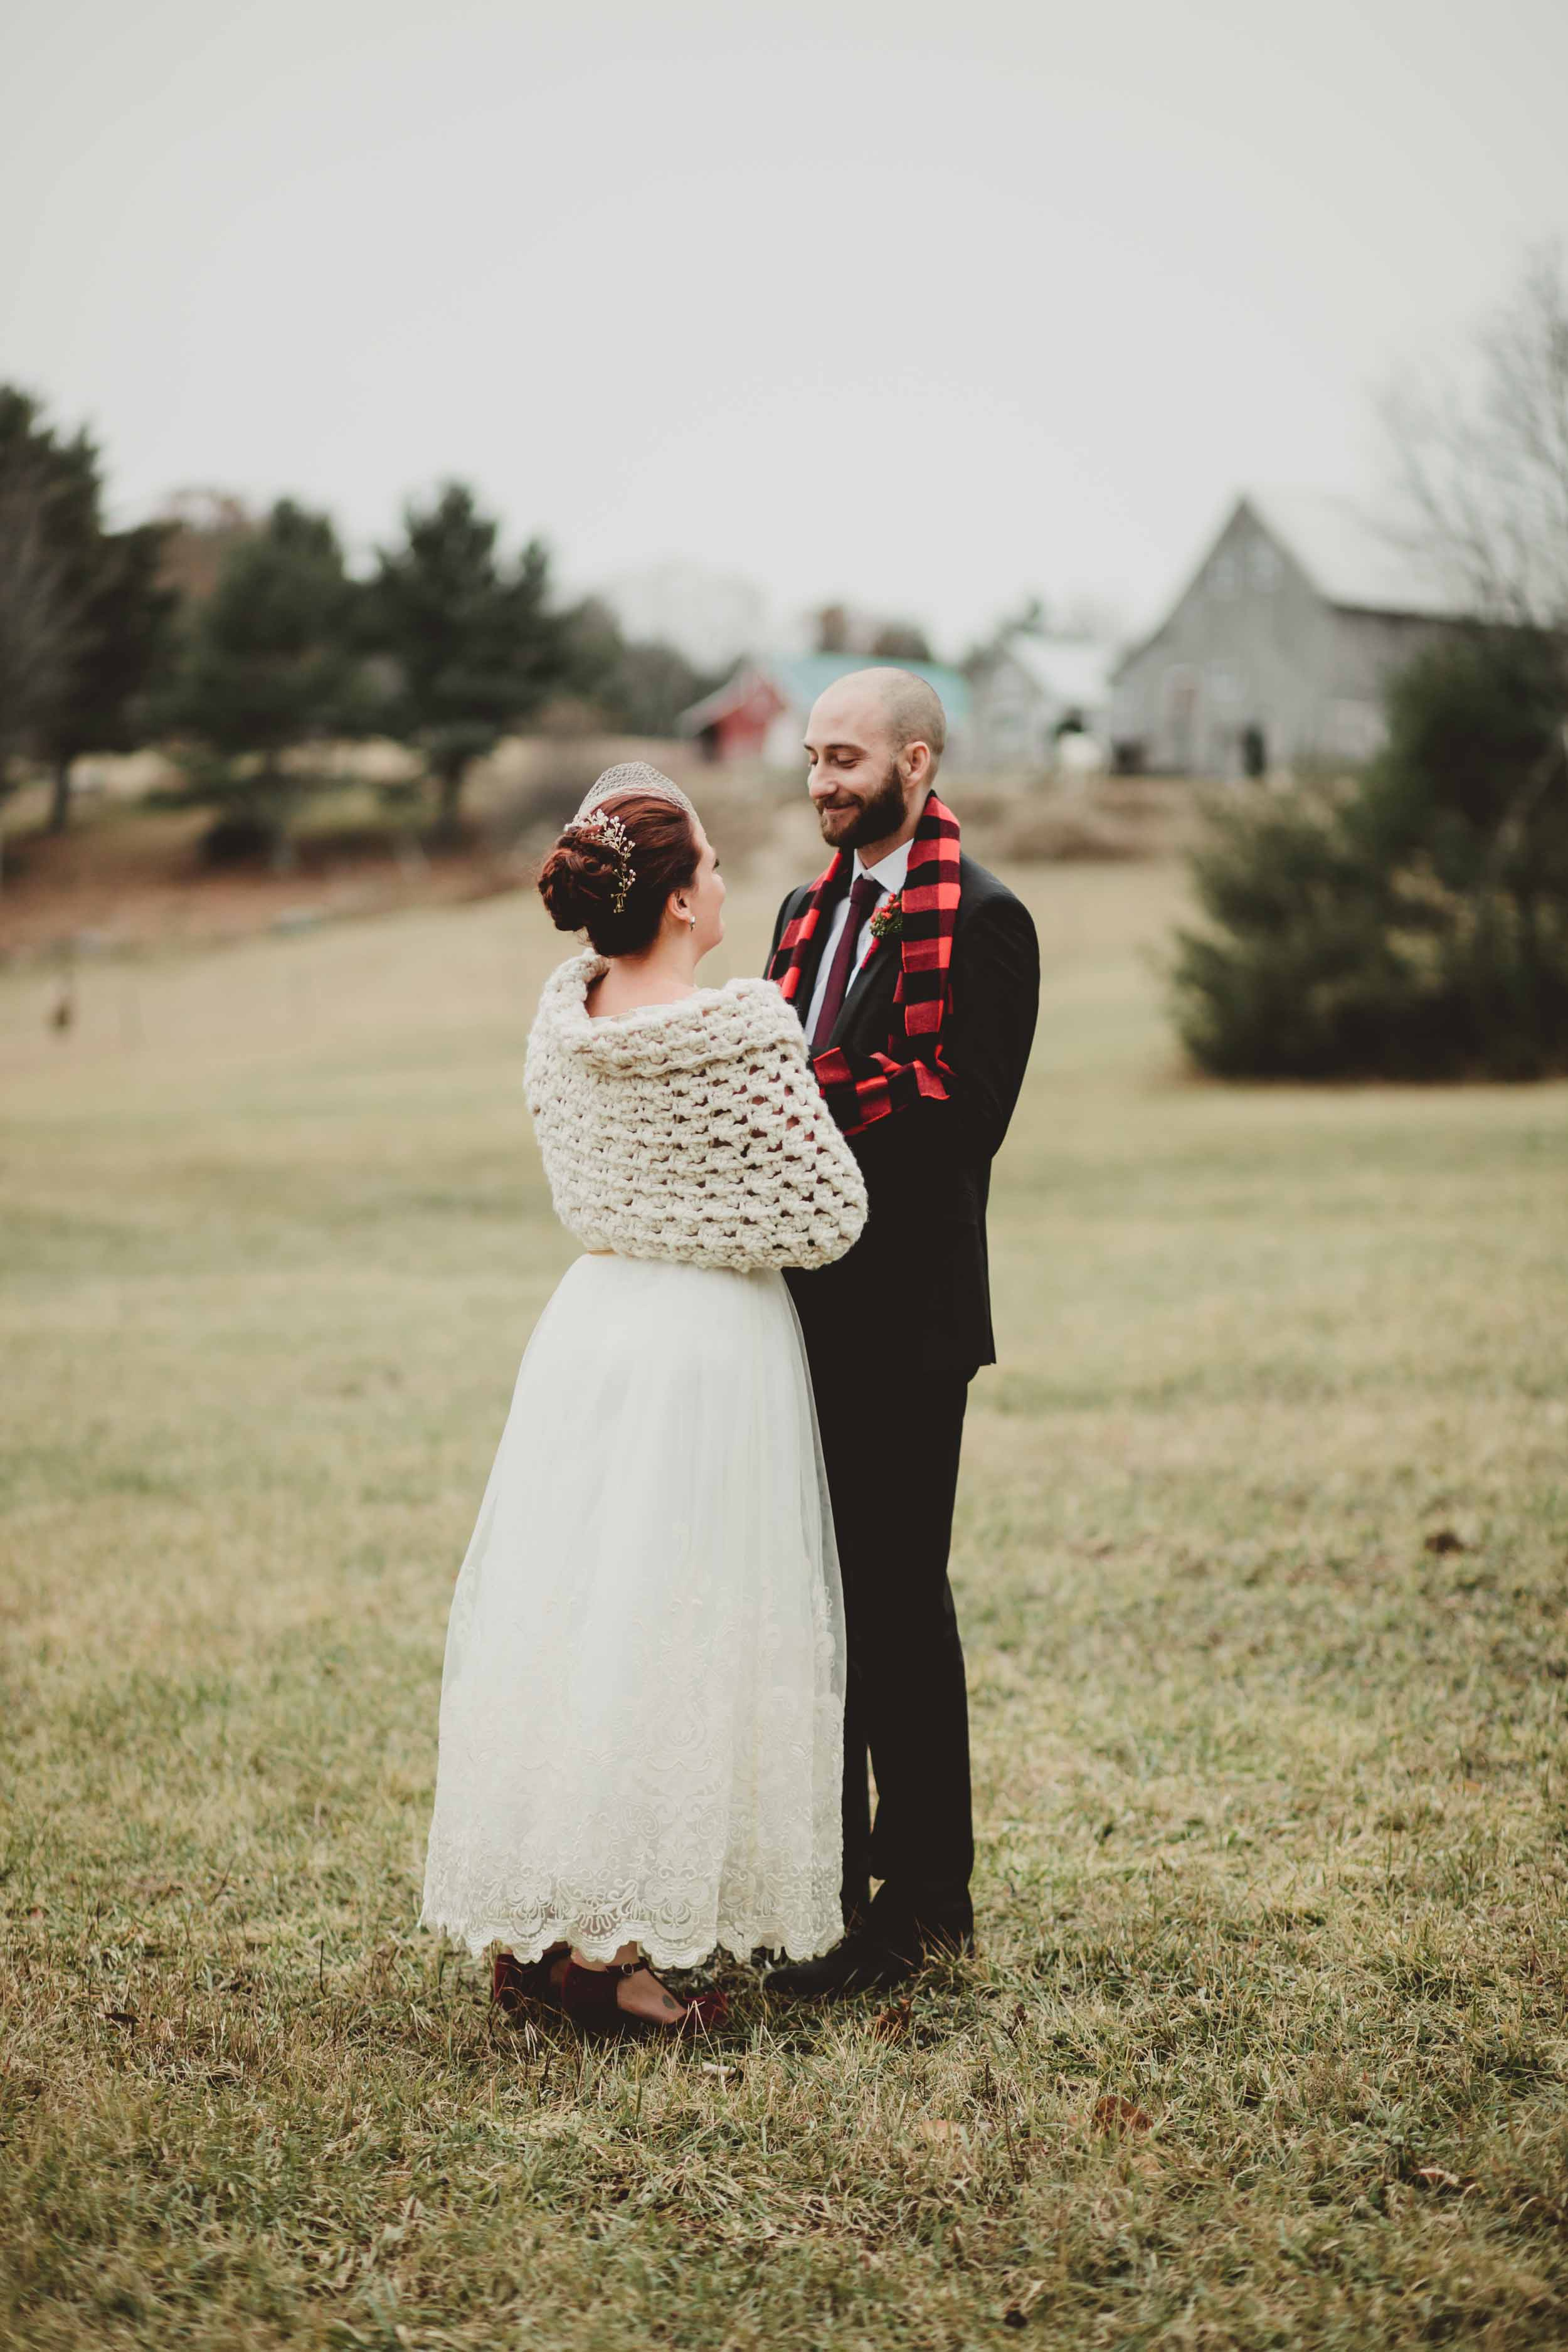 Stone-mountain-arts-wedding97.jpg